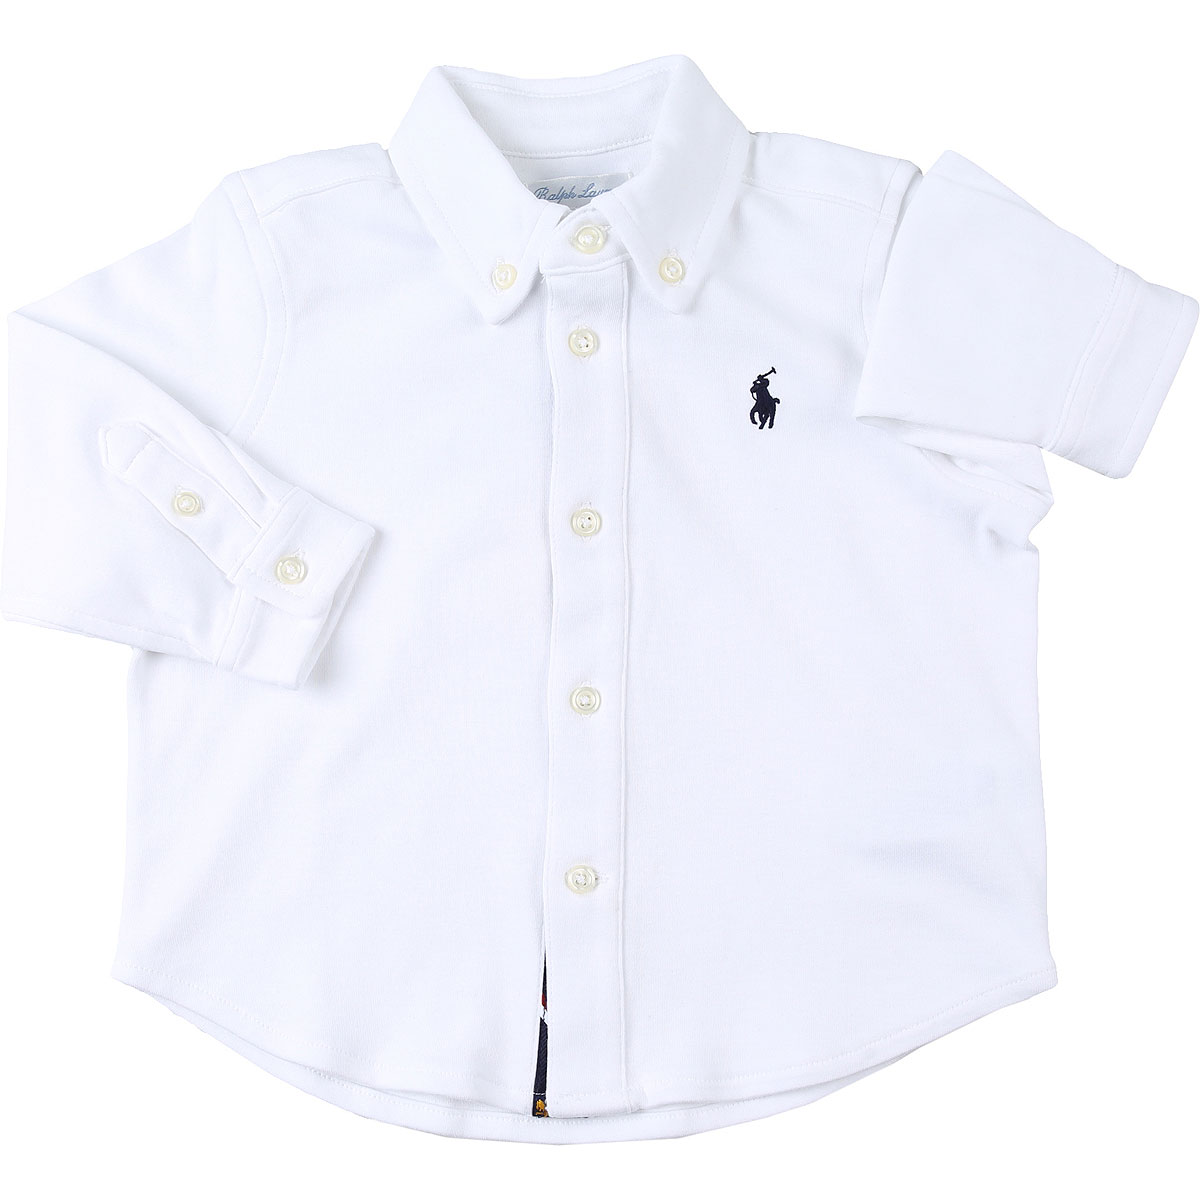 Ralph Lauren Baby Polo Shirt for Boys On Sale, White, Cotton, 2019, 12 M 2Y 9M